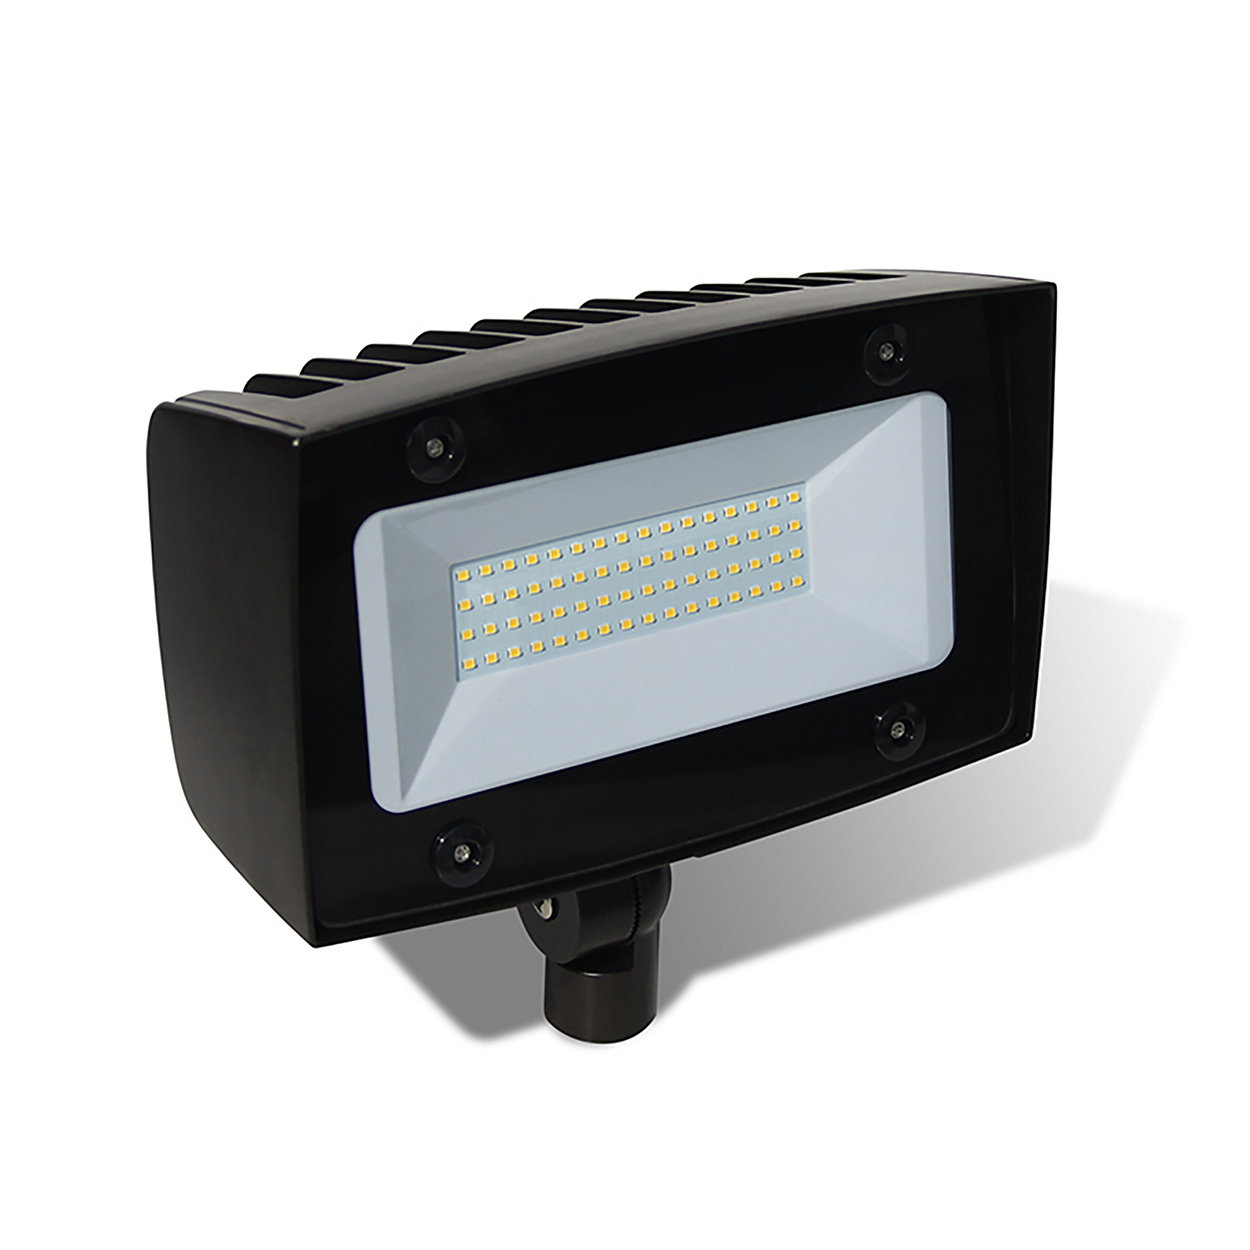 LED General Purpose Floods - high value versatility and performance